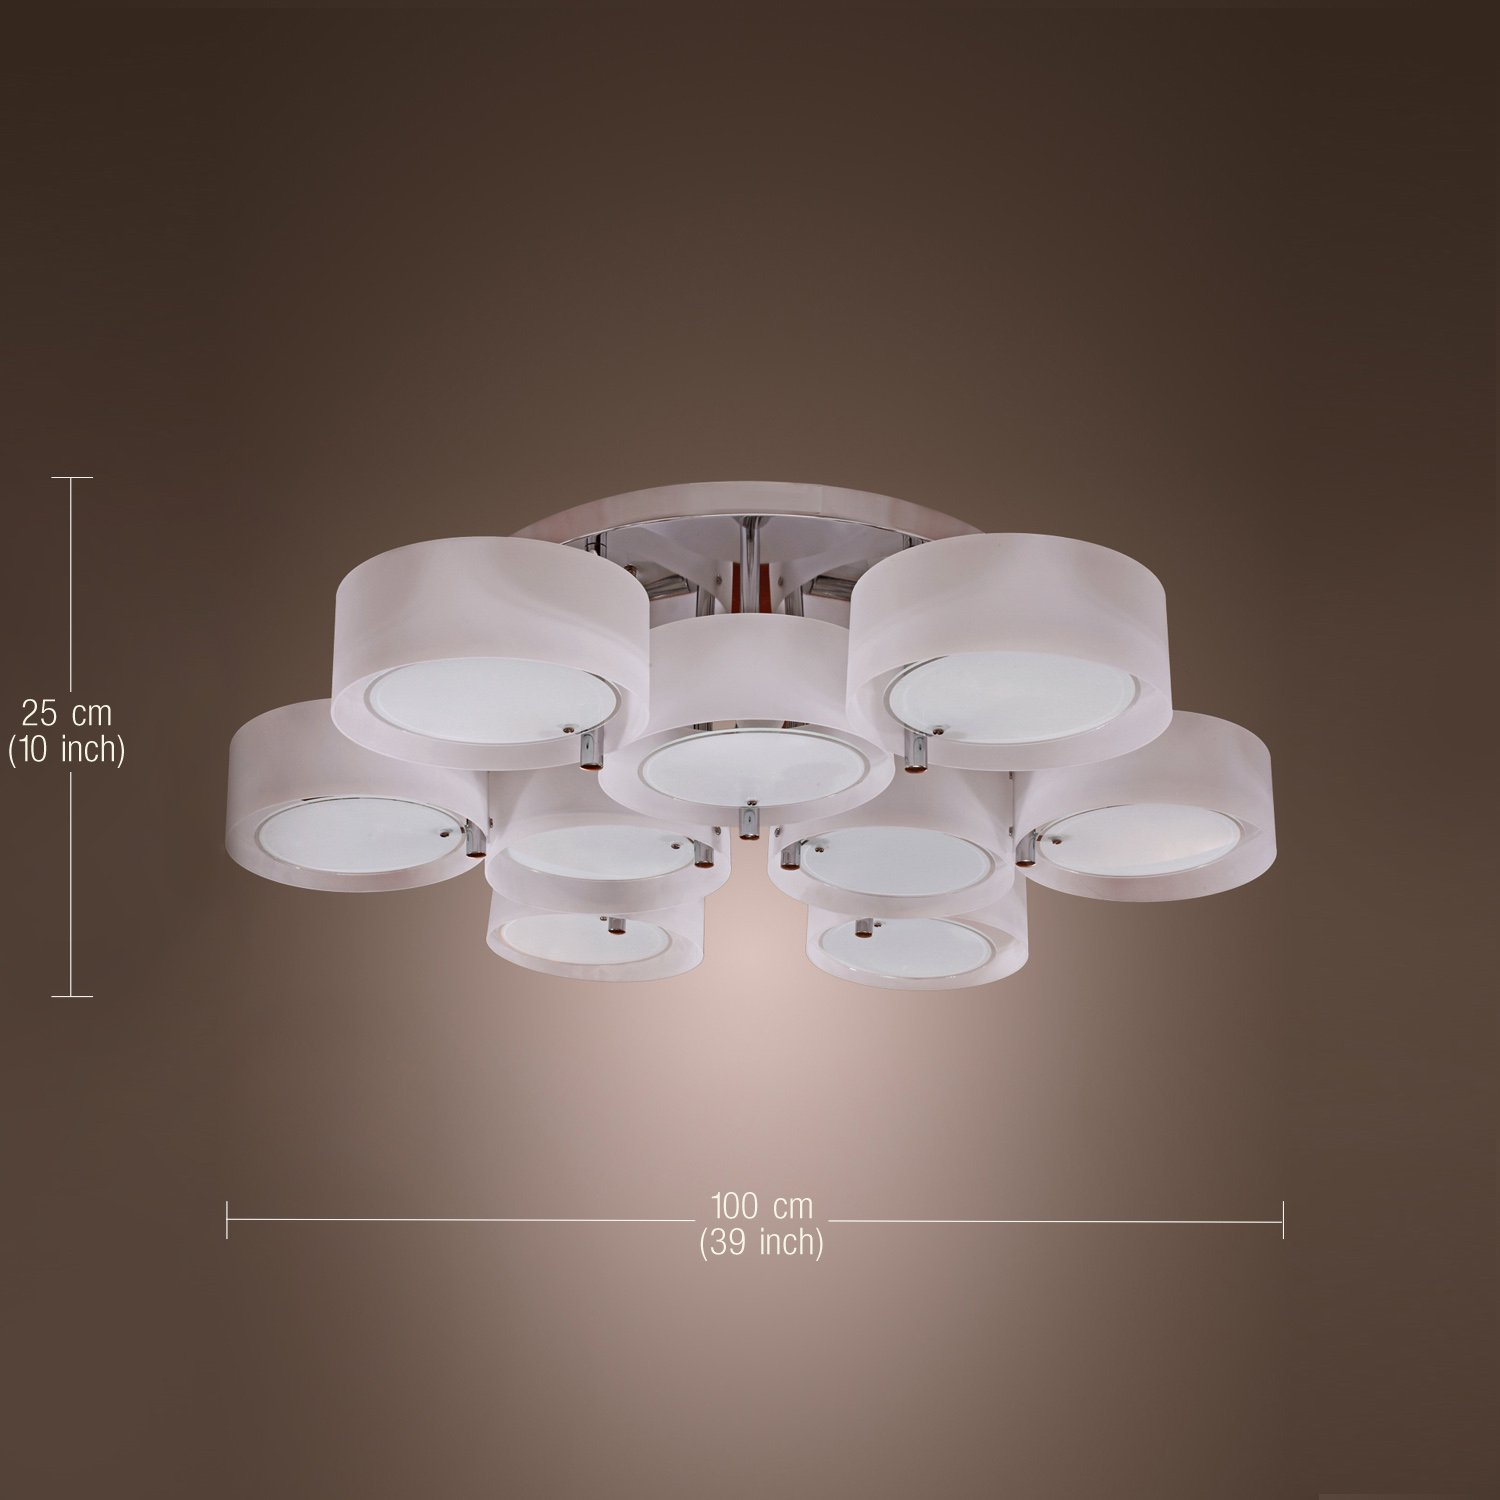 Lightinthebox acrylic chandelier with 9 lights flush mount modern ceiling light fixture chrome finish